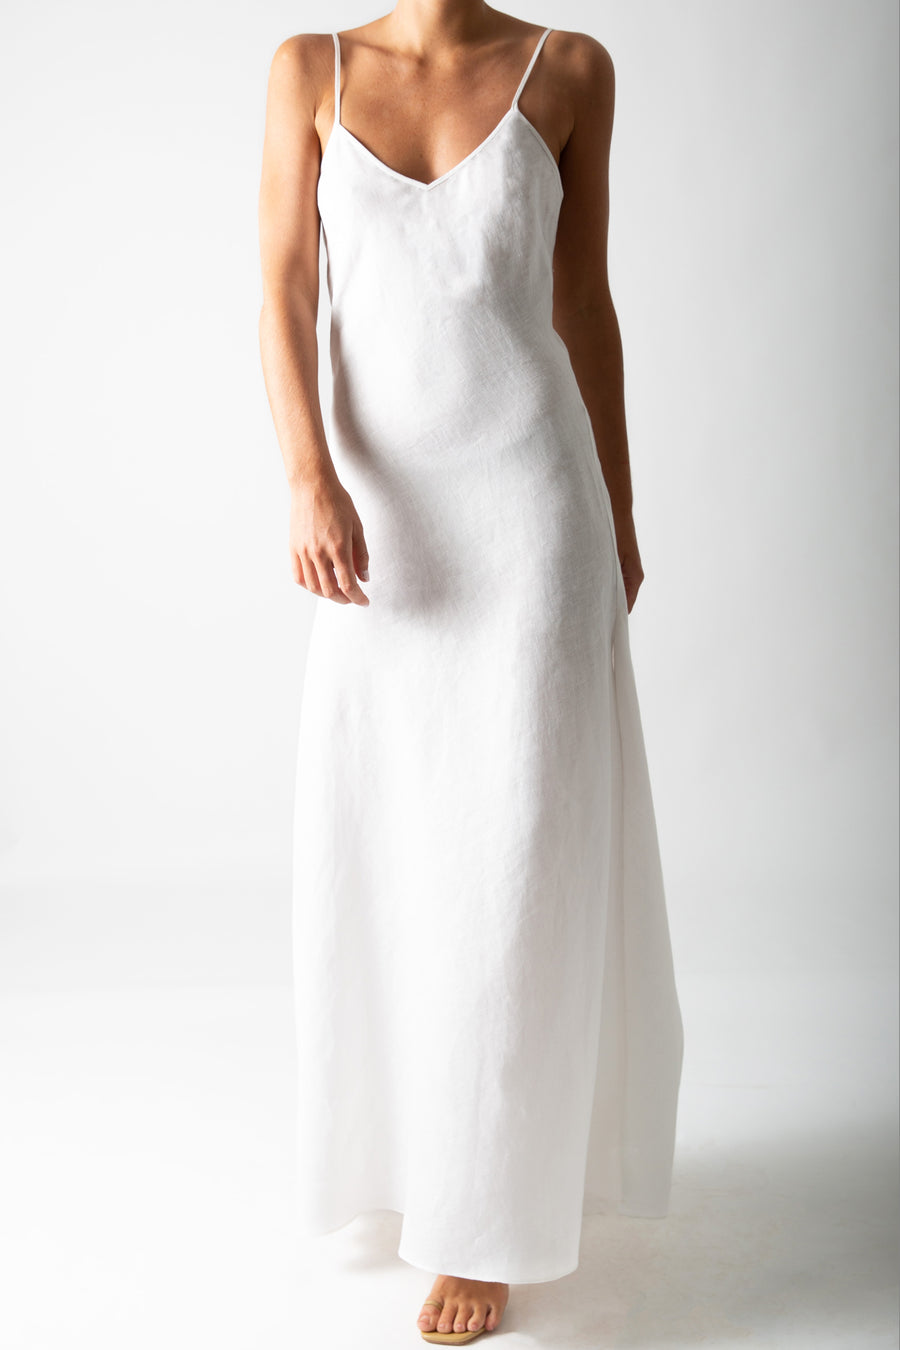 This is a photo of a woman from the neck down, she is wearing a white linen slip dress that reached to the floor.